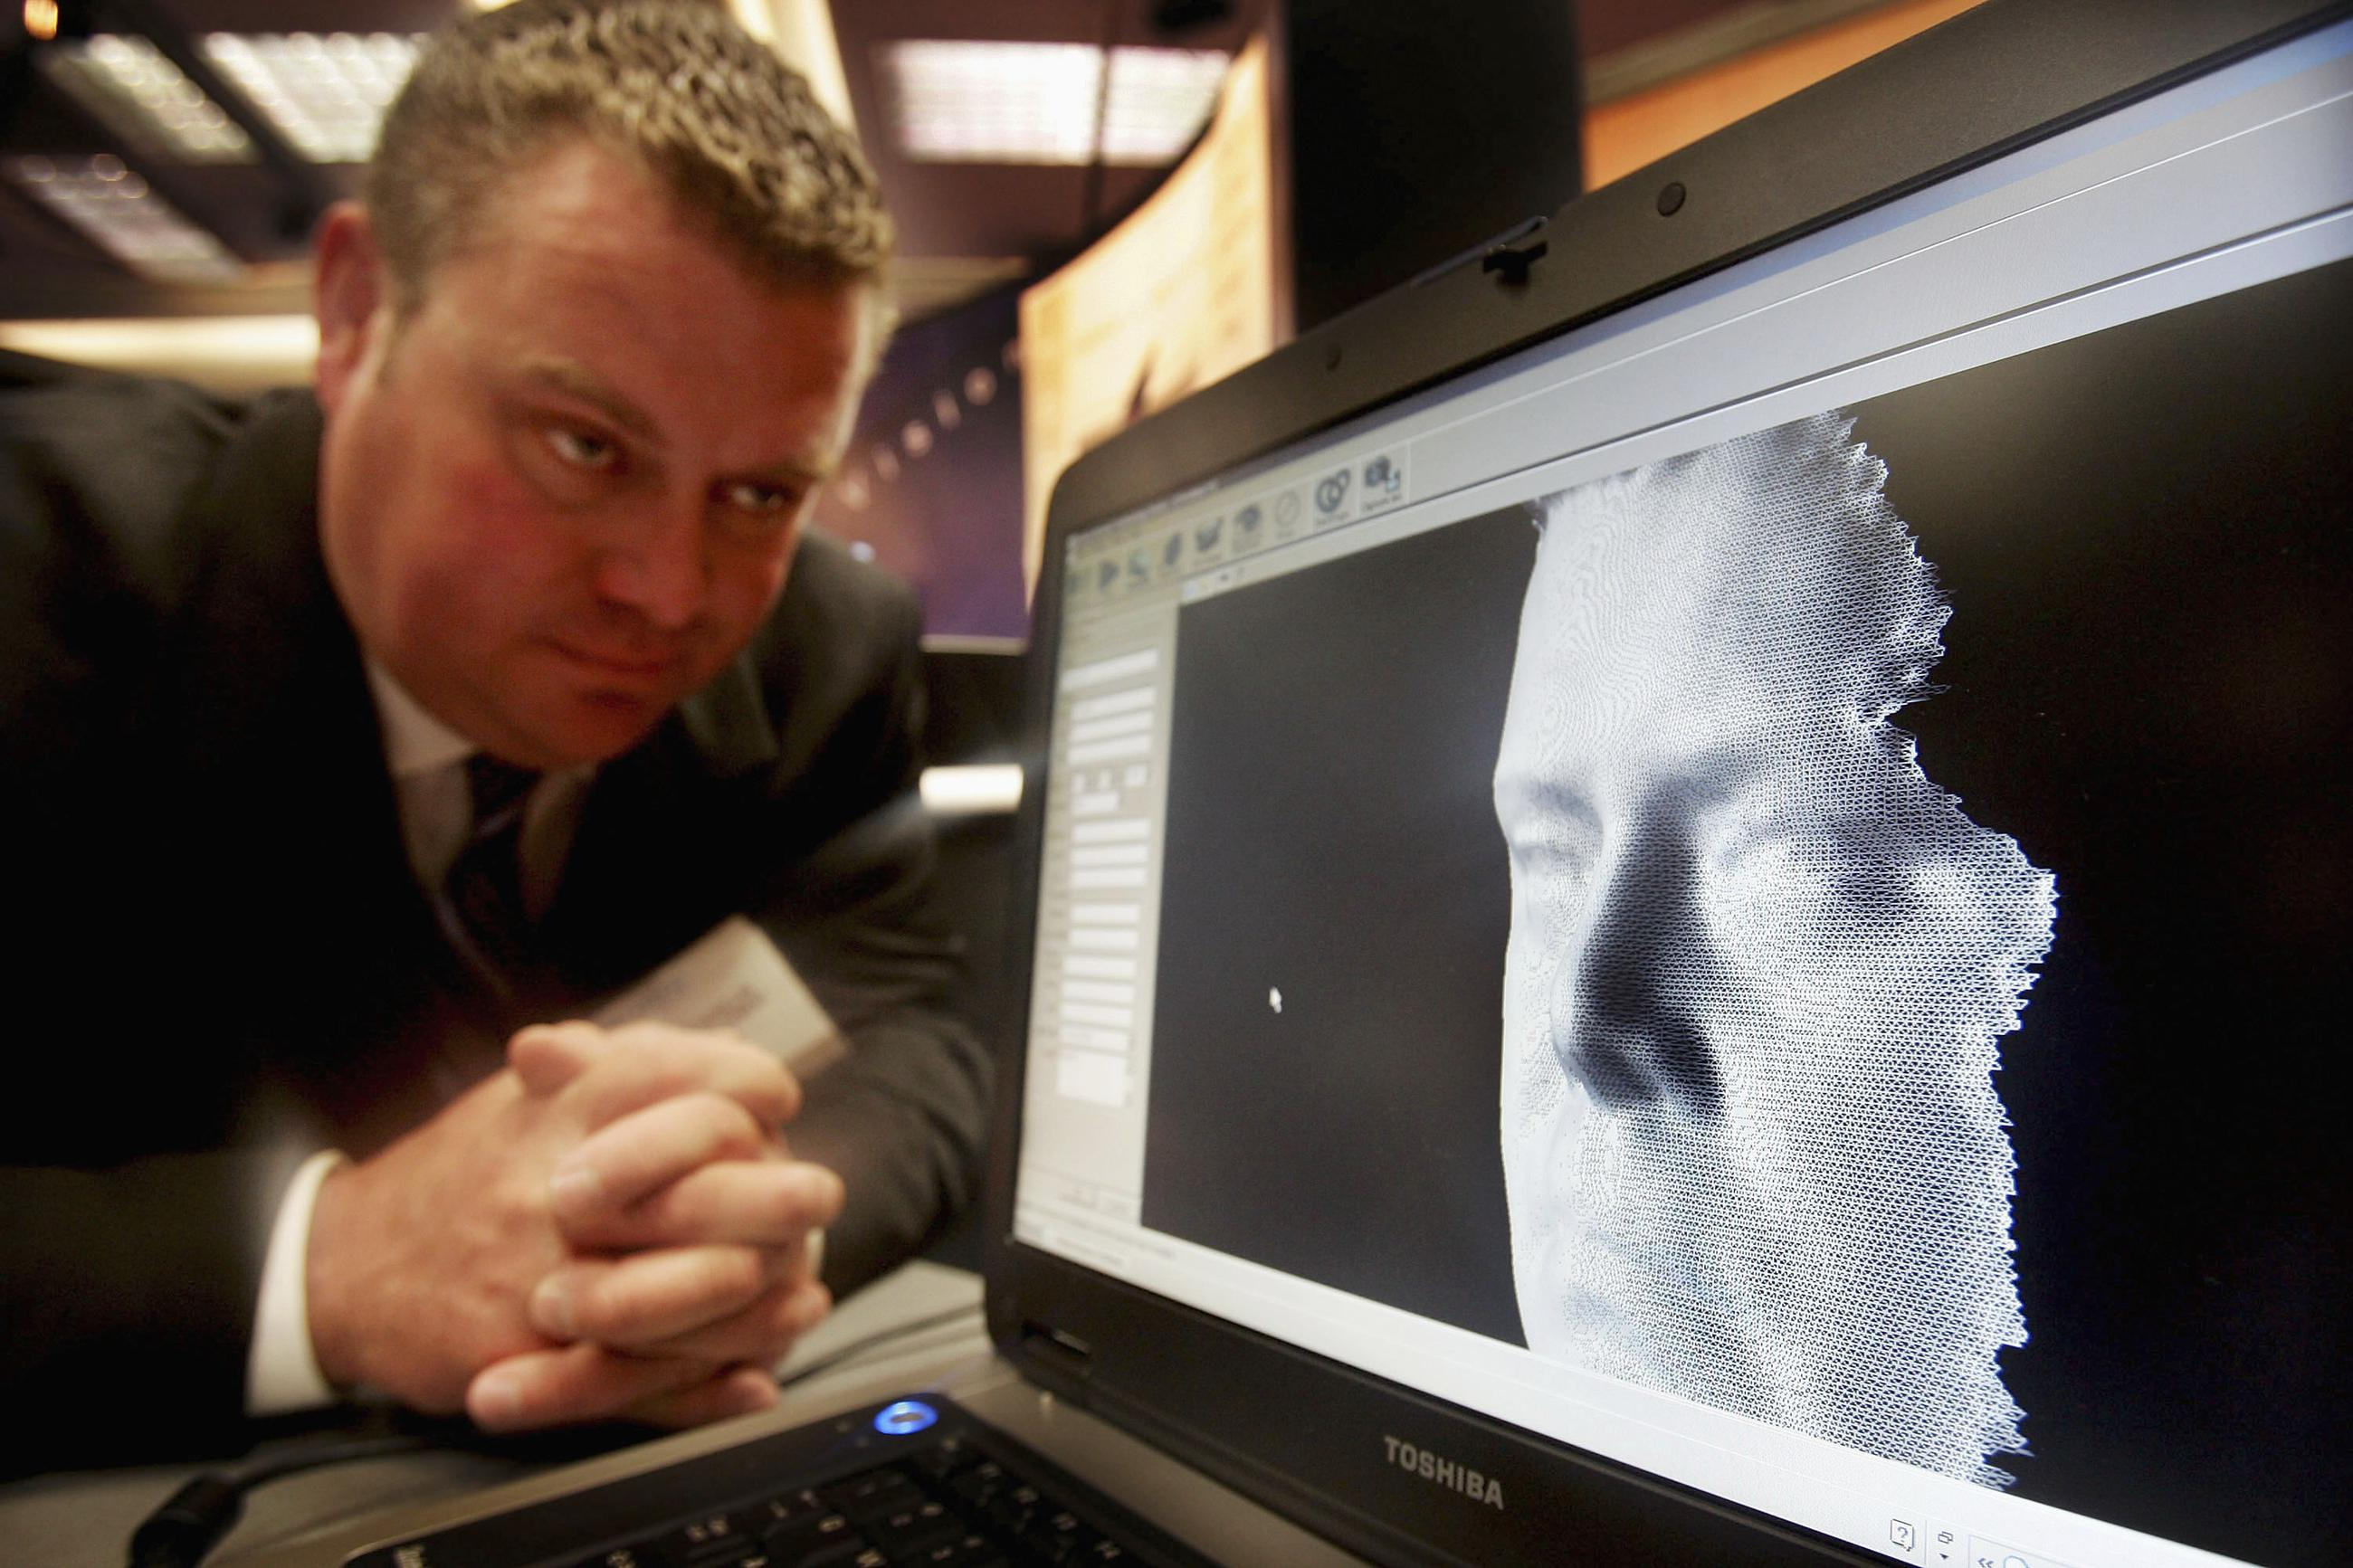 Privacy Group Wins Court Ruling Against FBI's Facial-Recognition Technology